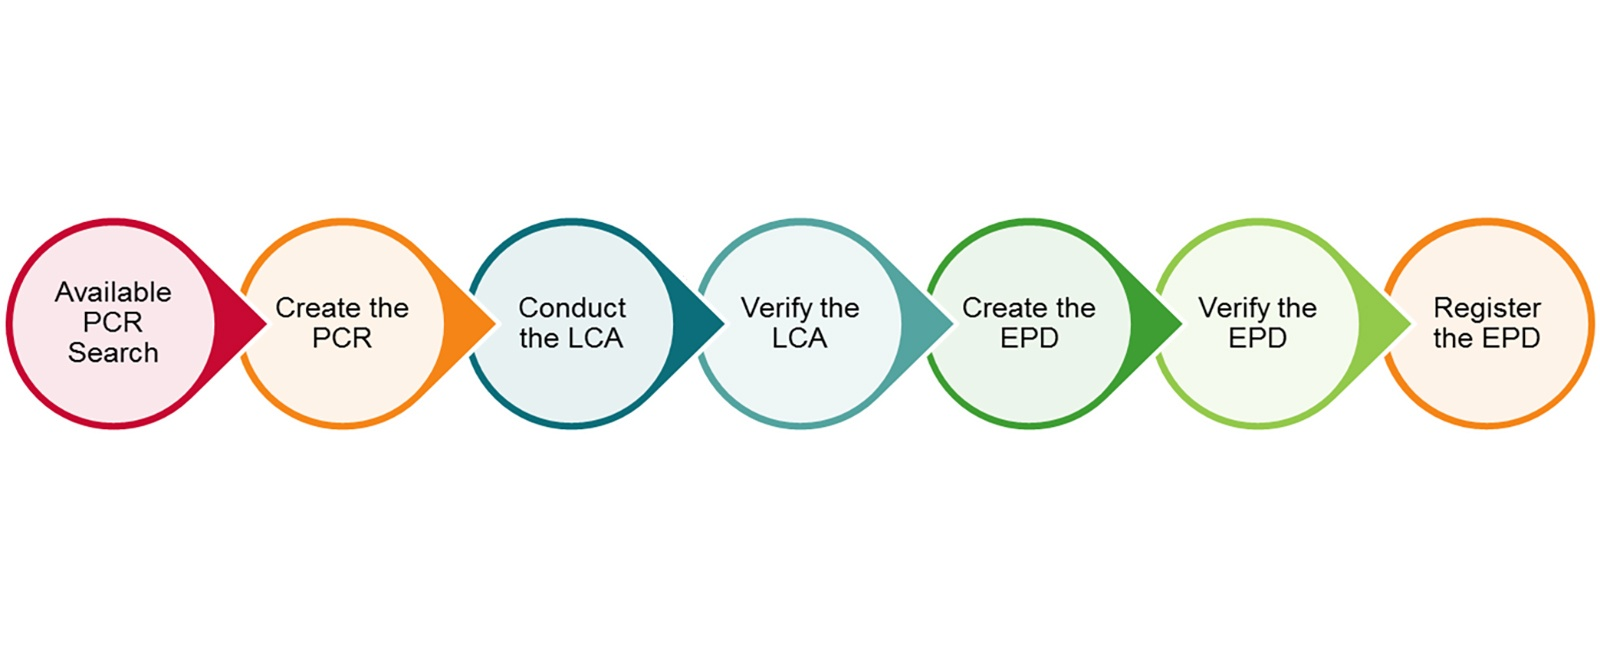 Creating An Epd From Product Category Rules To A Leed V4 Point